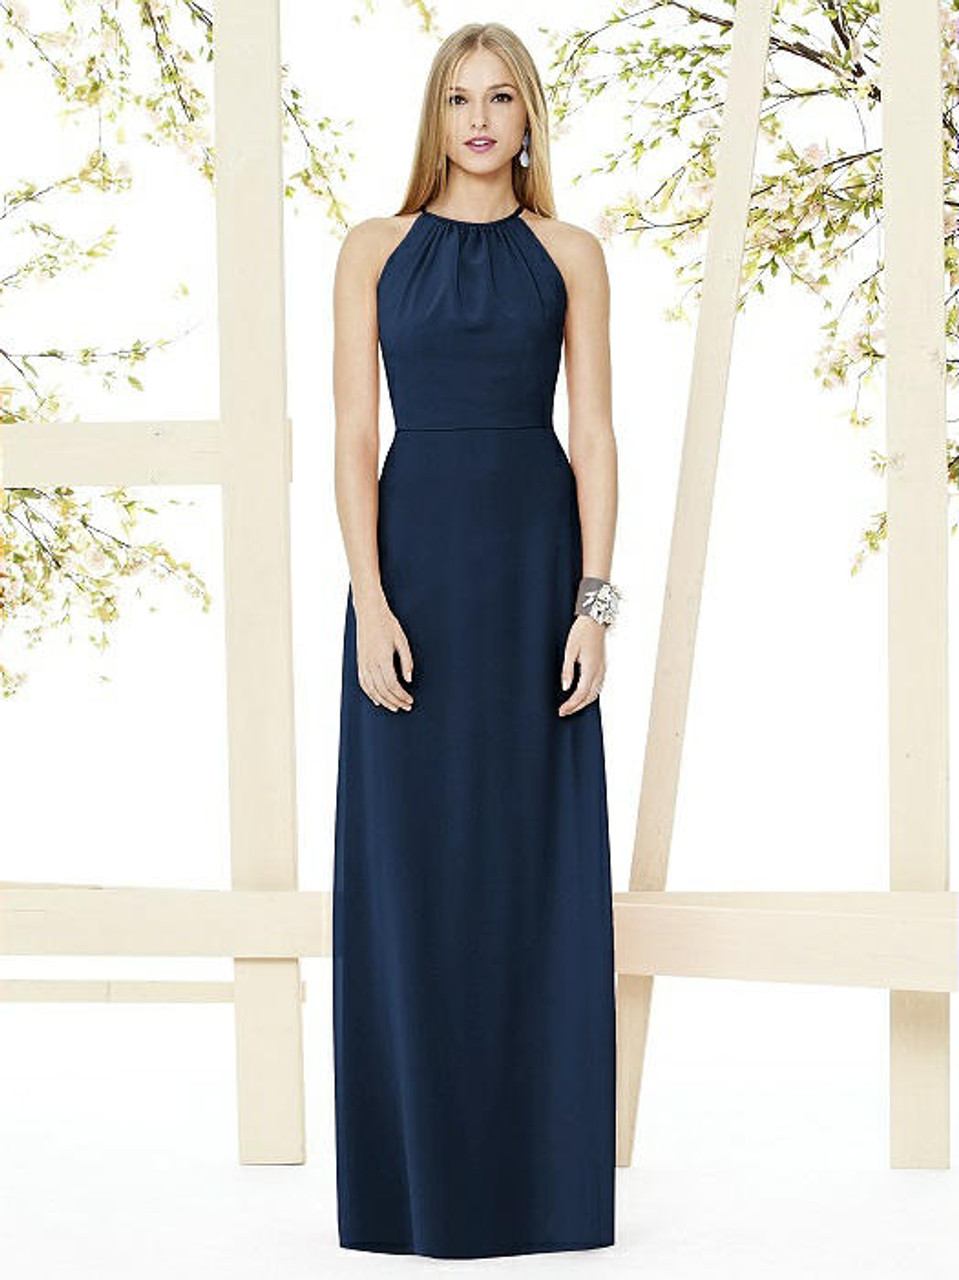 Social Bridesmaids Dress Style 8151 - Matte Chiffon - Midnight - In Stock Dress